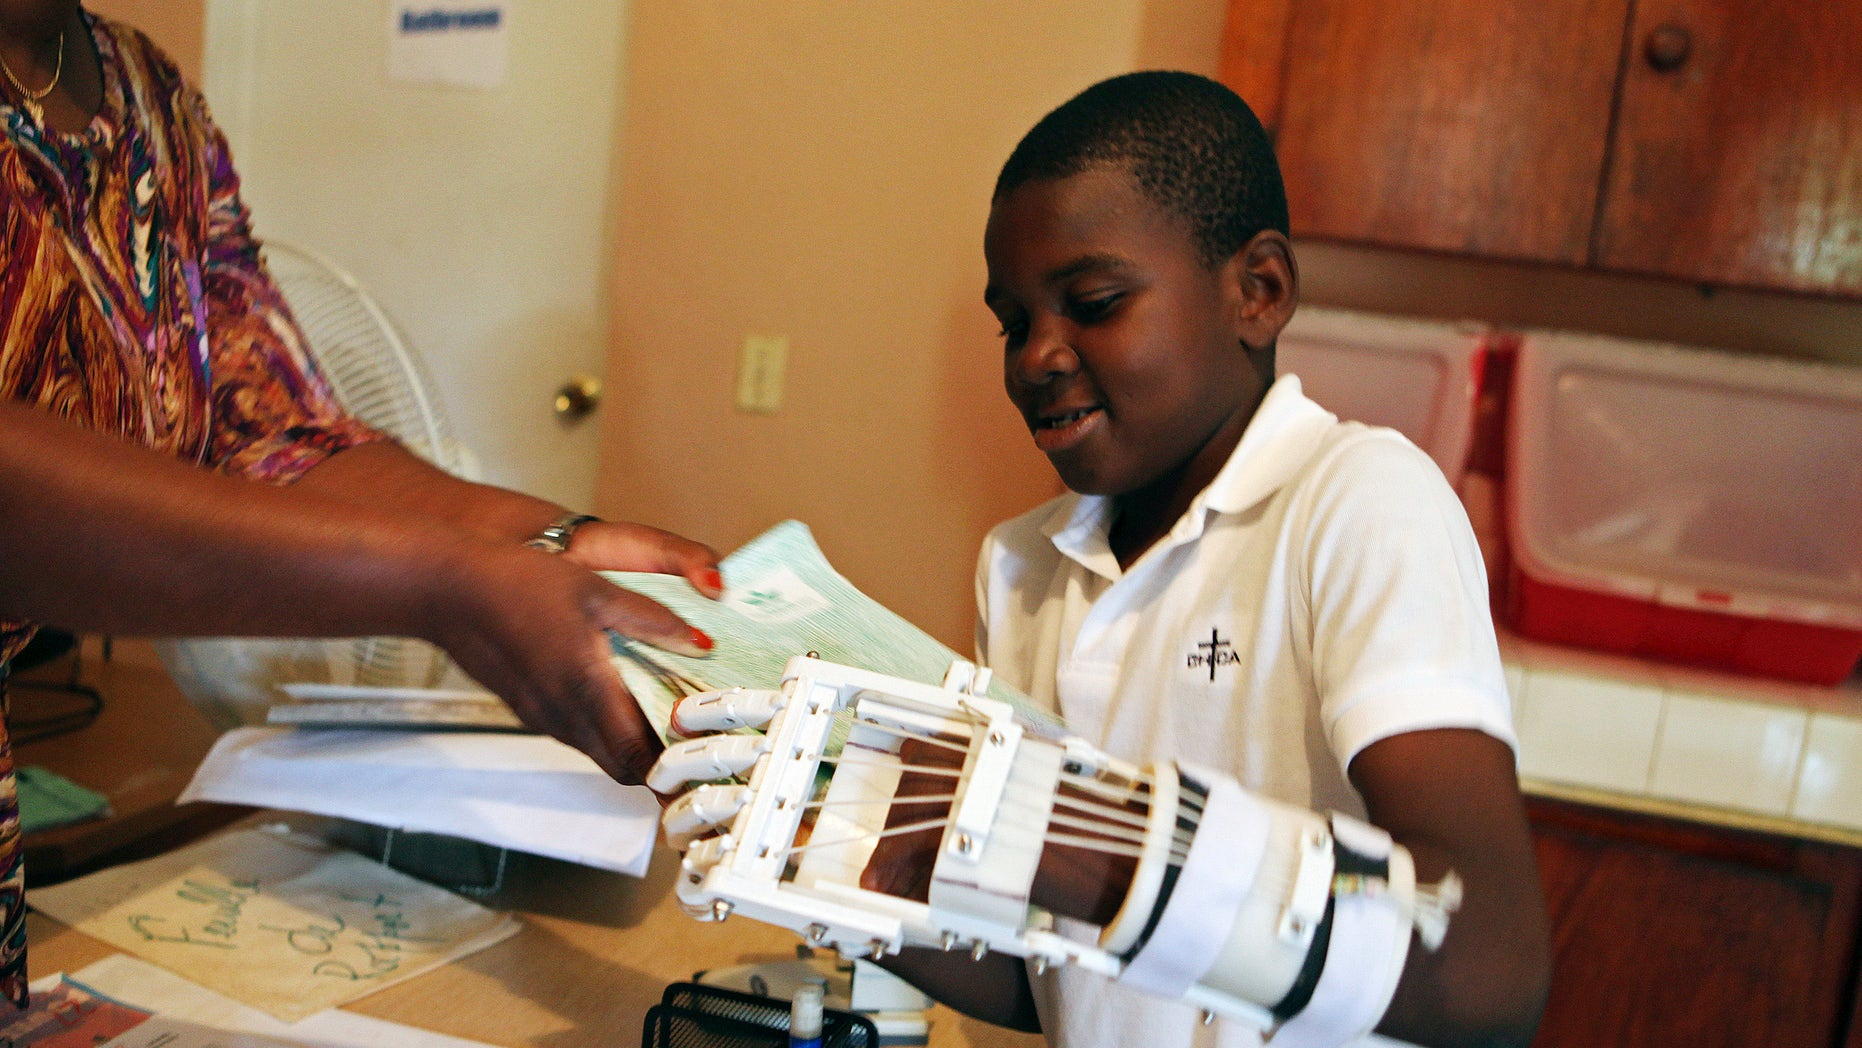 Handicapped Haitian boy Stevenson Joseph learns to use a 3D-printed prosthetic hand at the orphanage where he lives in Santo, near Port-au-Prince, April 28, 2014. (REUTERS/Marie Arago)